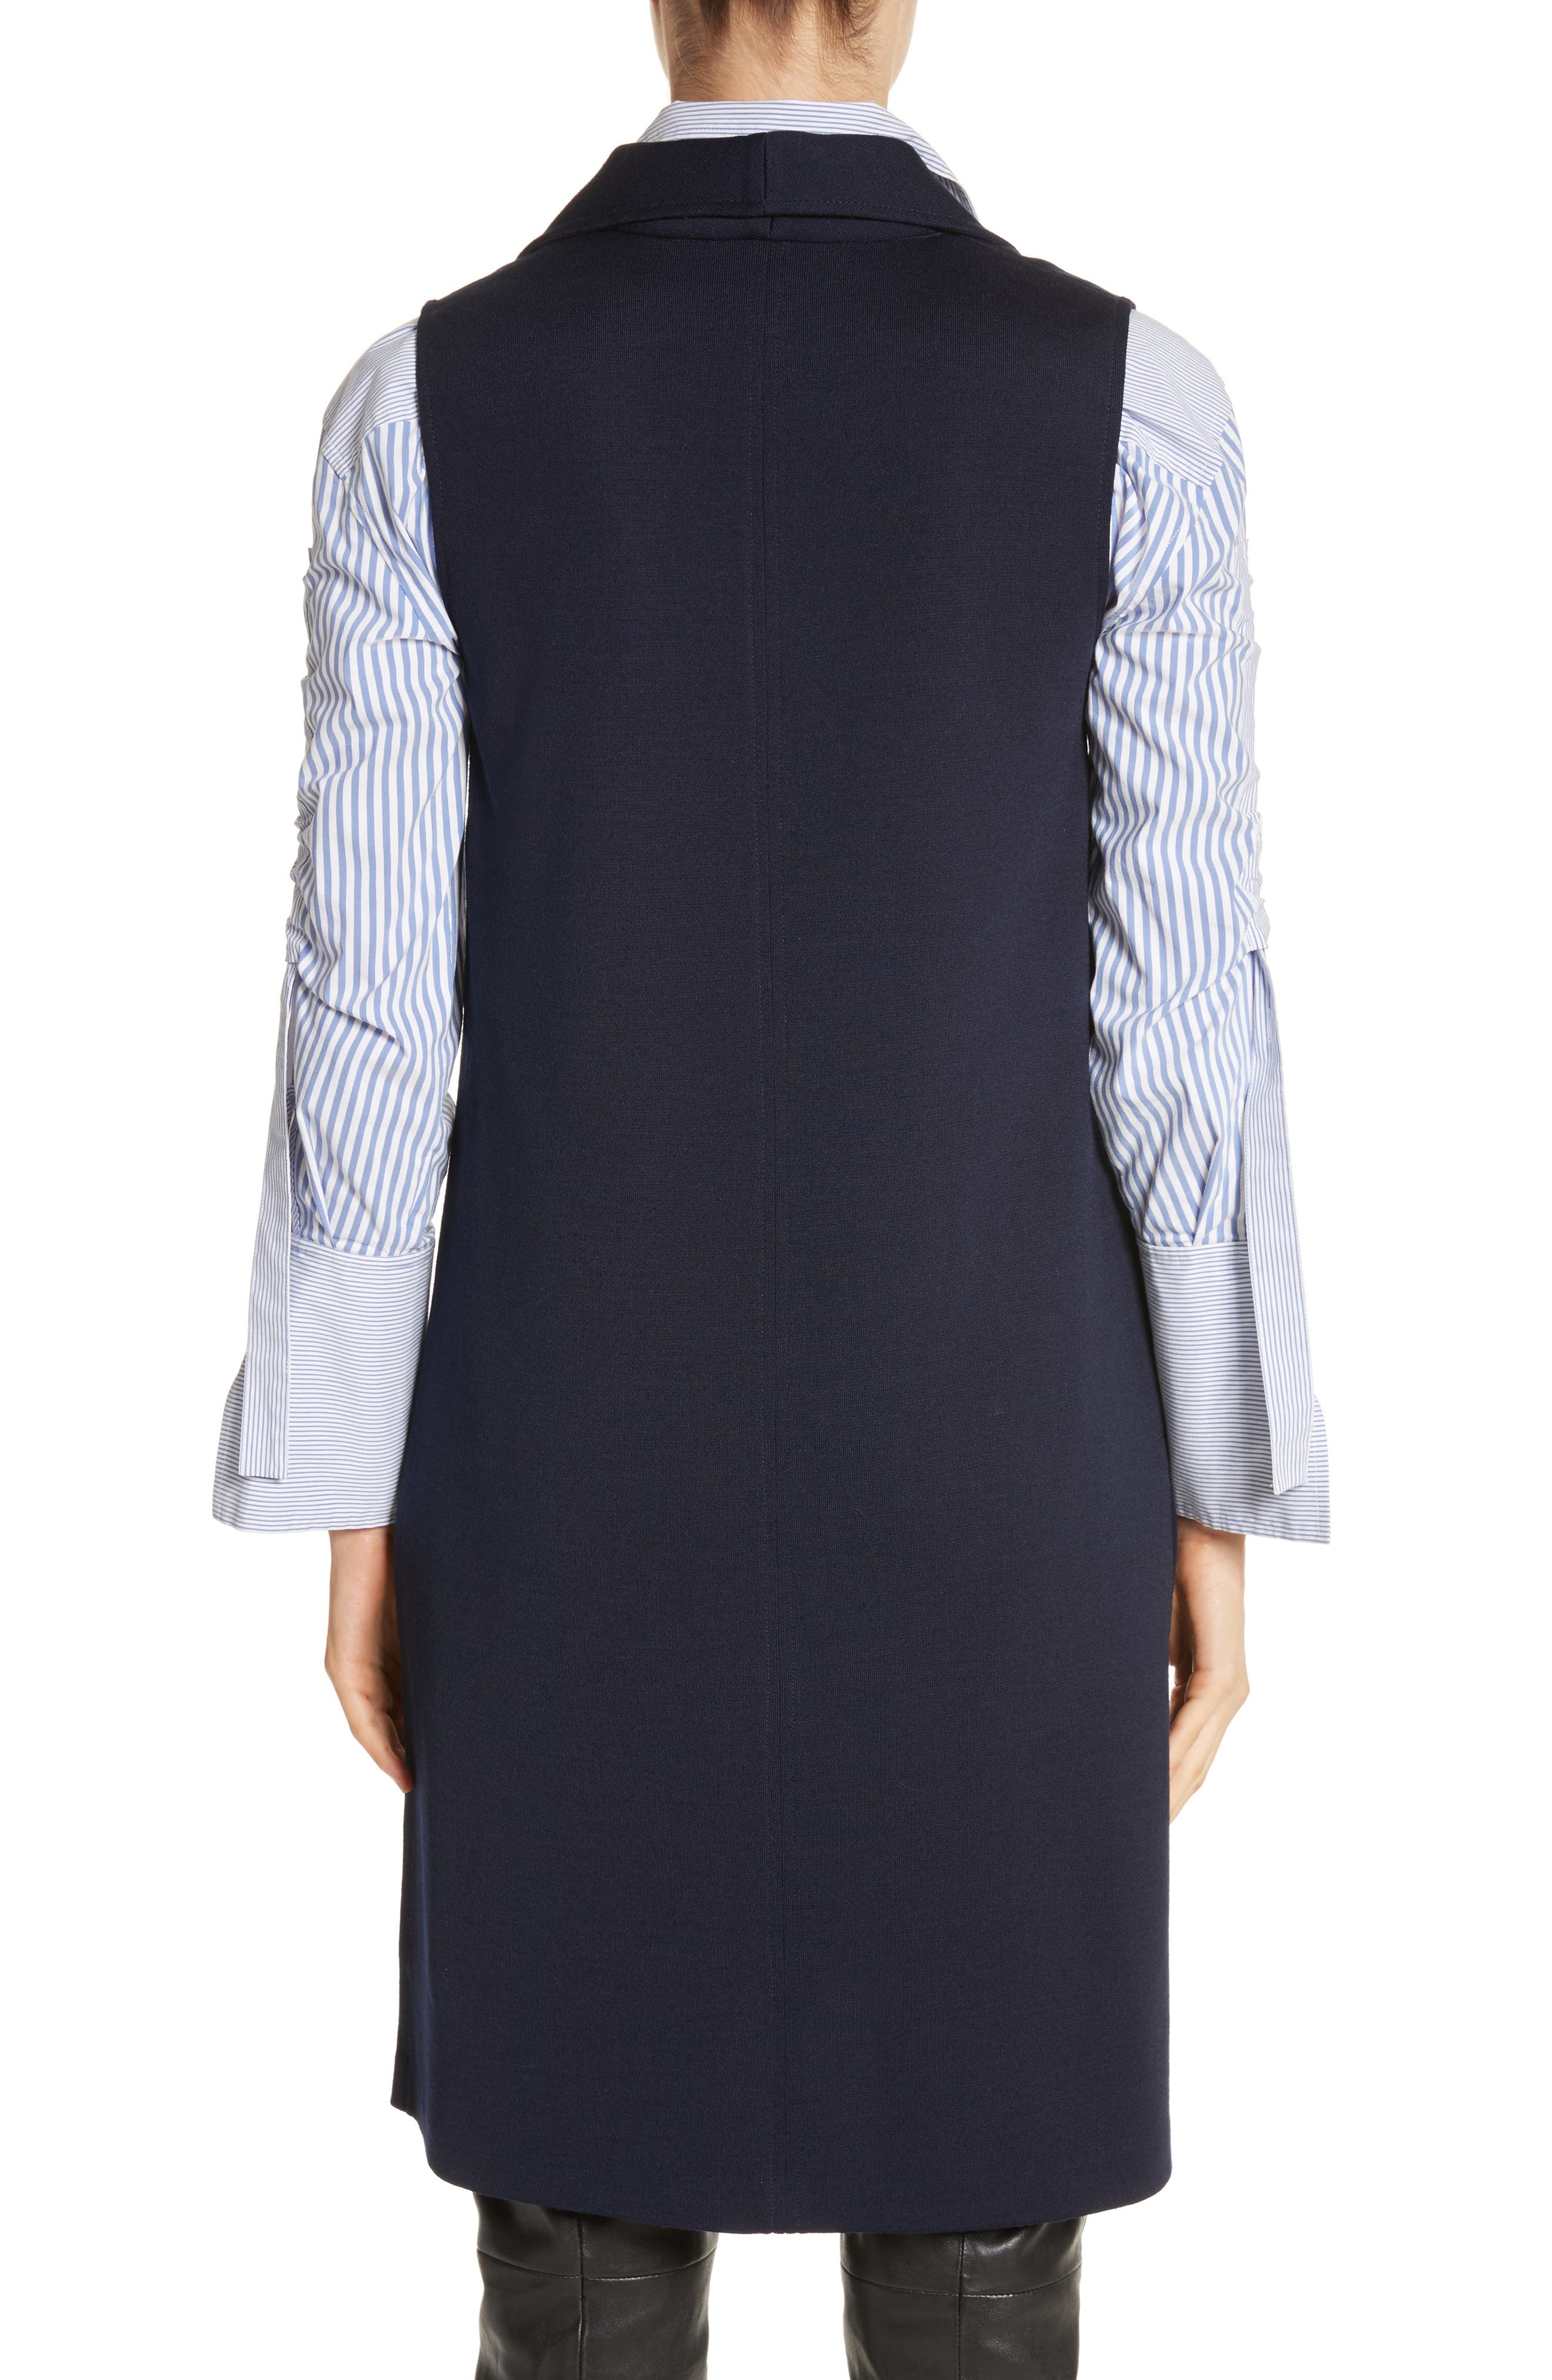 St John Collection Milano Knit Collared Tunic,                             Alternate thumbnail 2, color,                             Navy